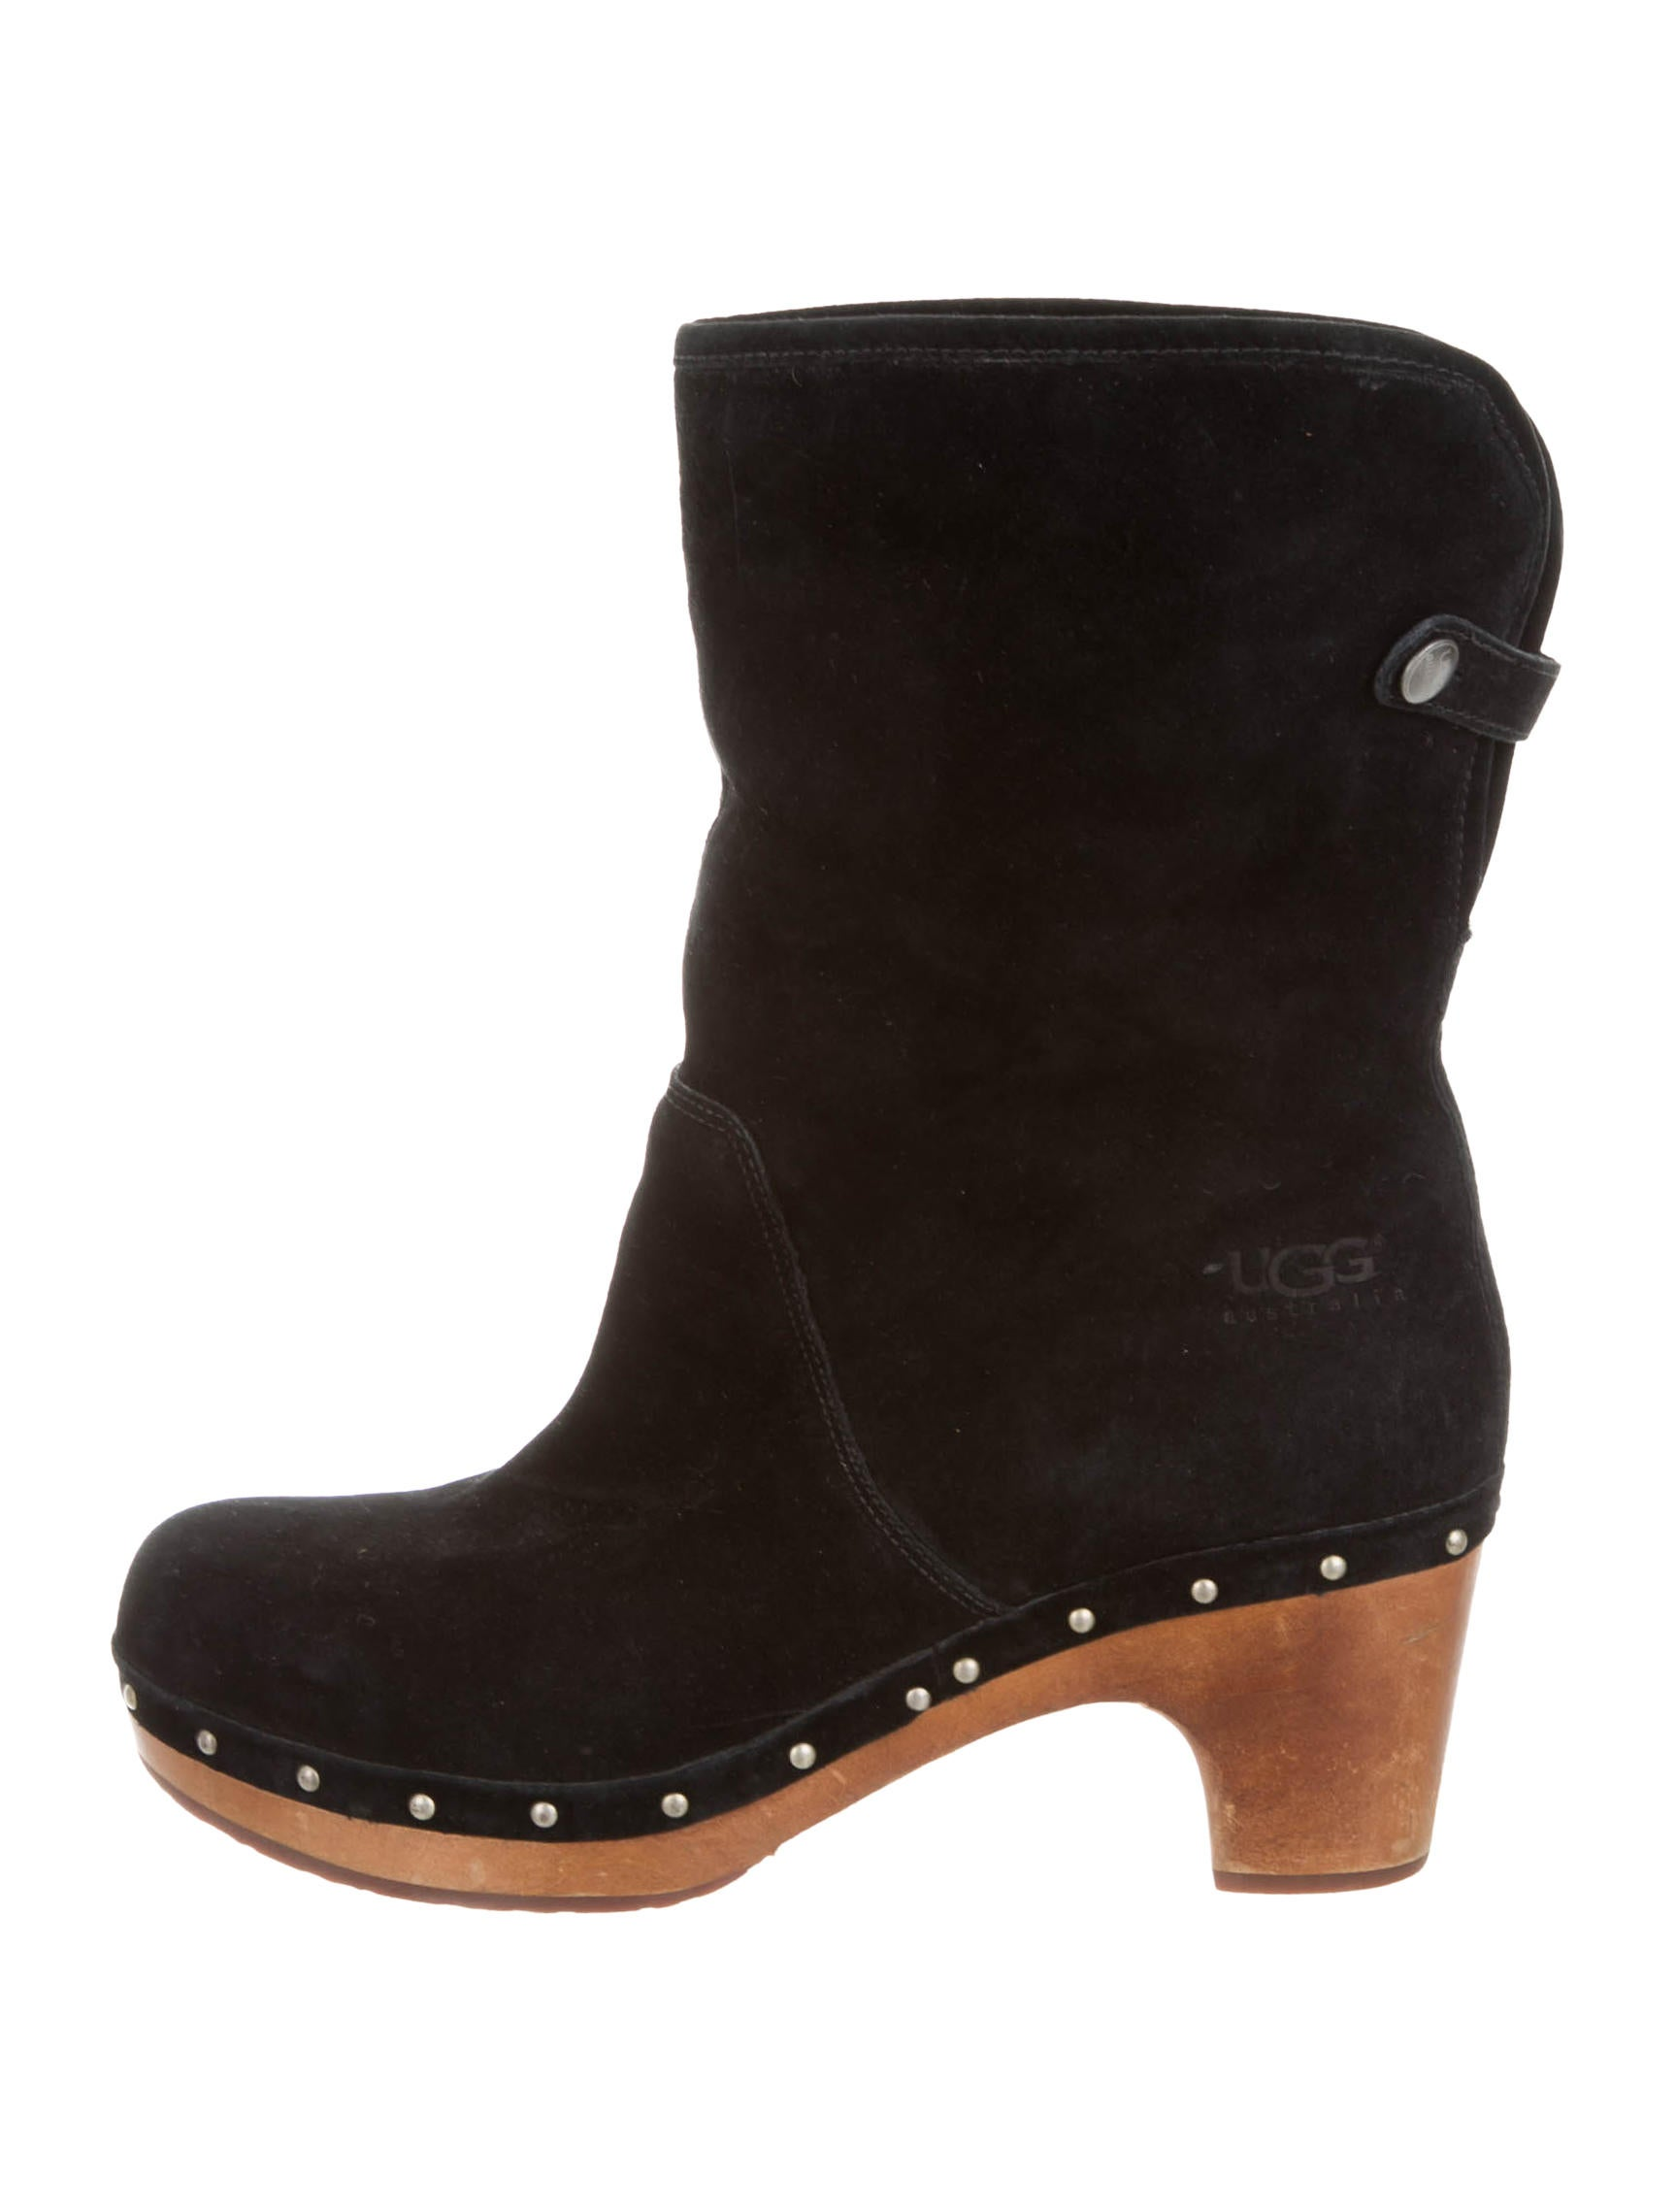 ugg australia rosabella suede ankle boots shoes